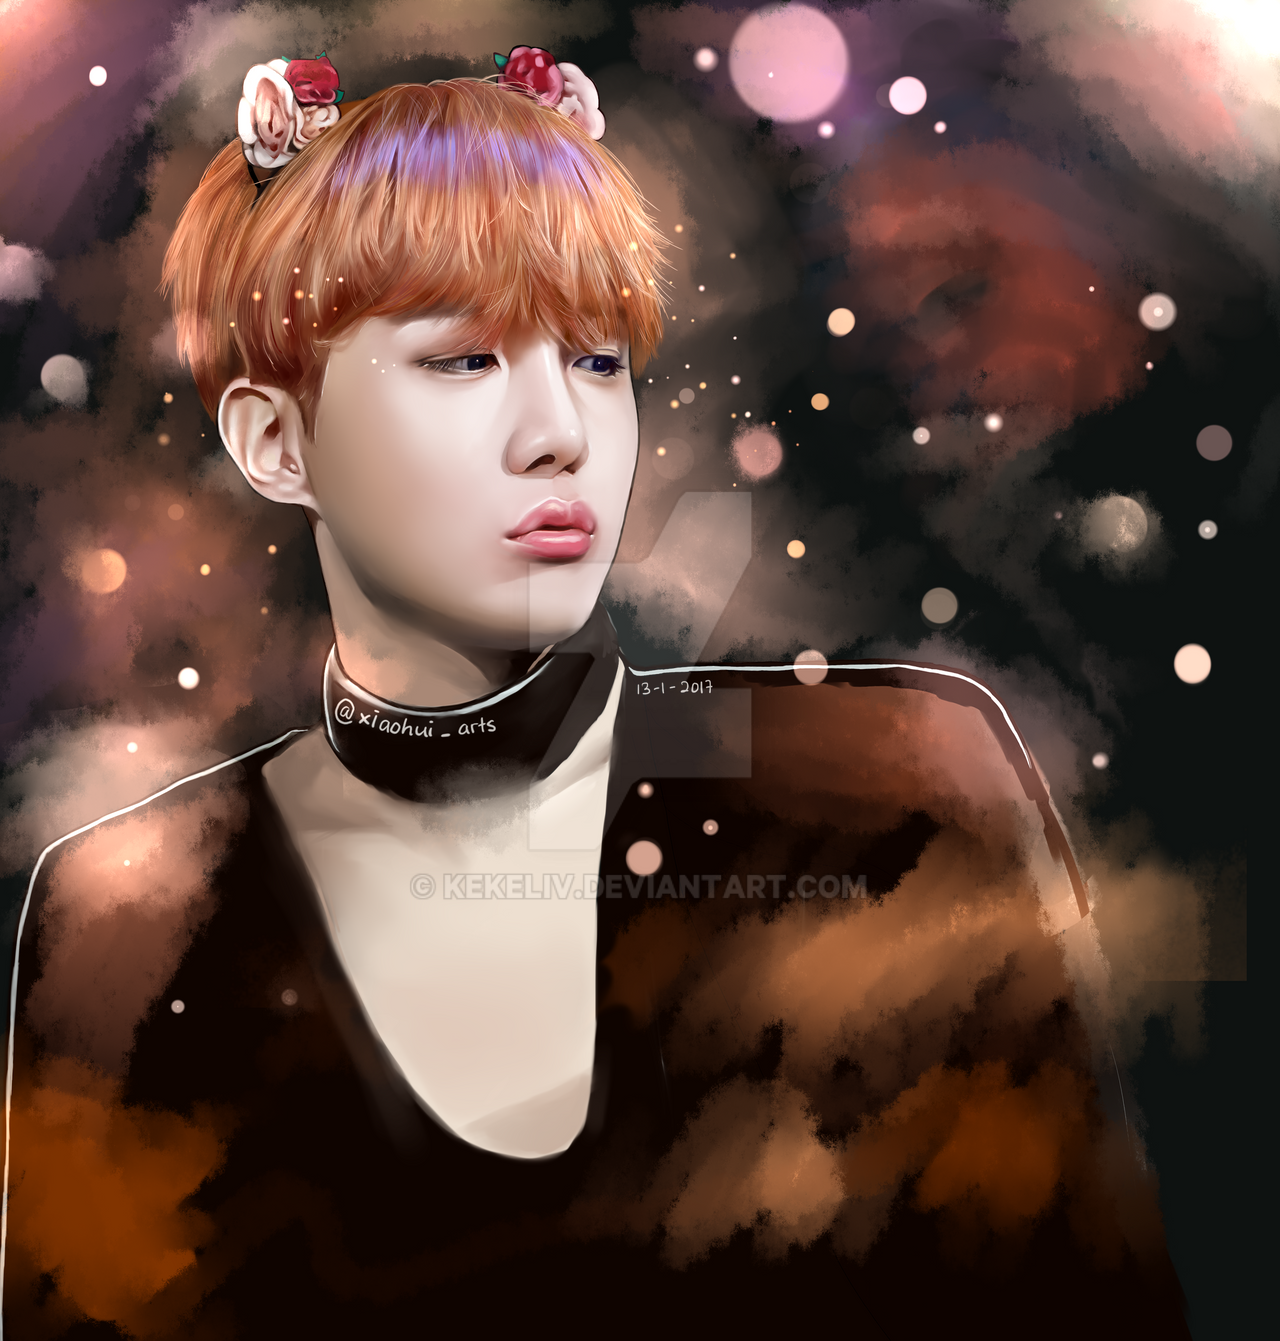 BTS J-Hope Fanart by KekeLiv